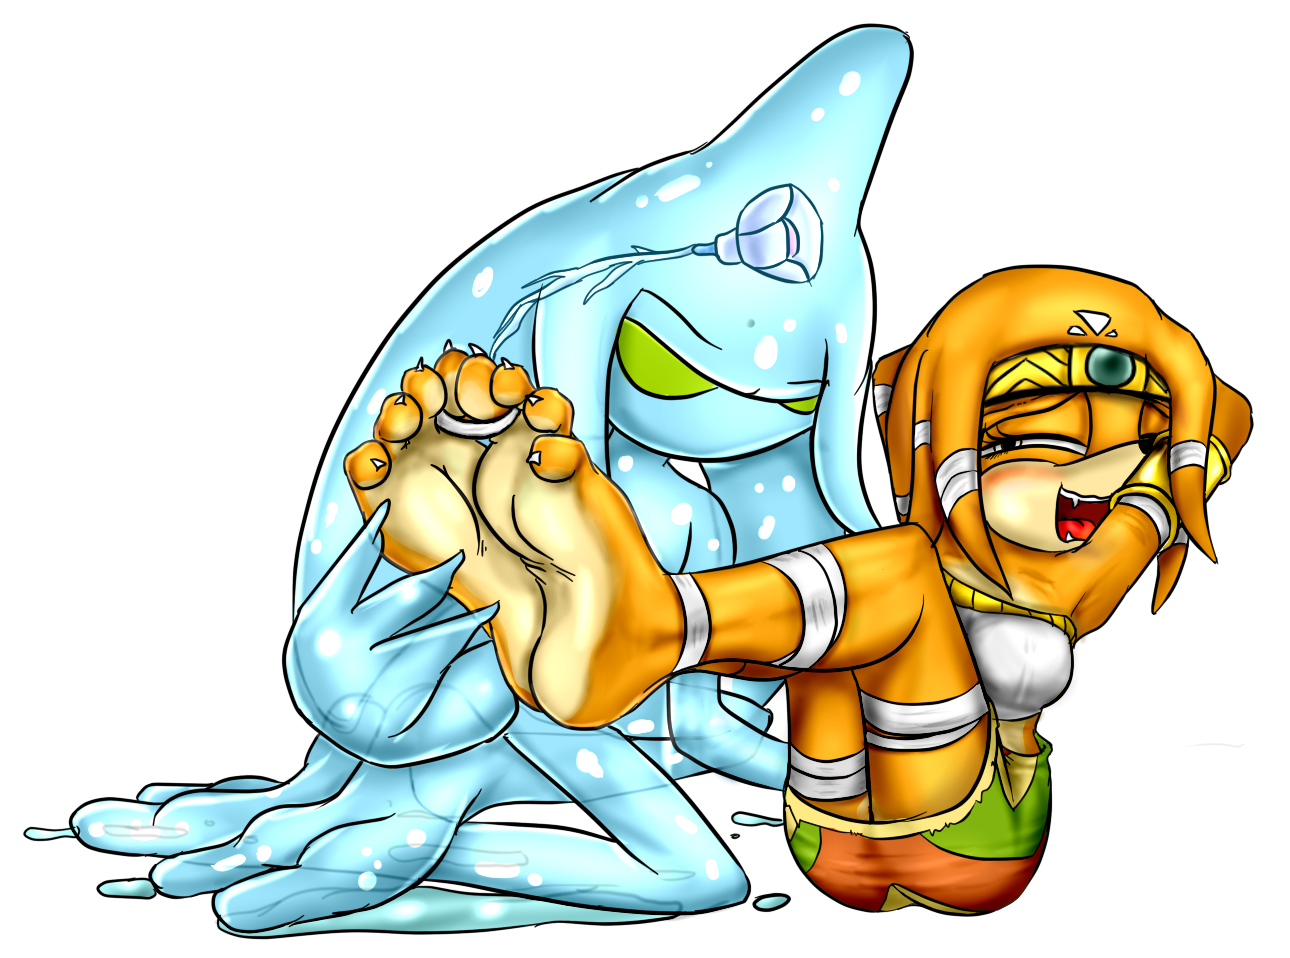 Tikal and Chaos: Ticklish couple by tickleLabs